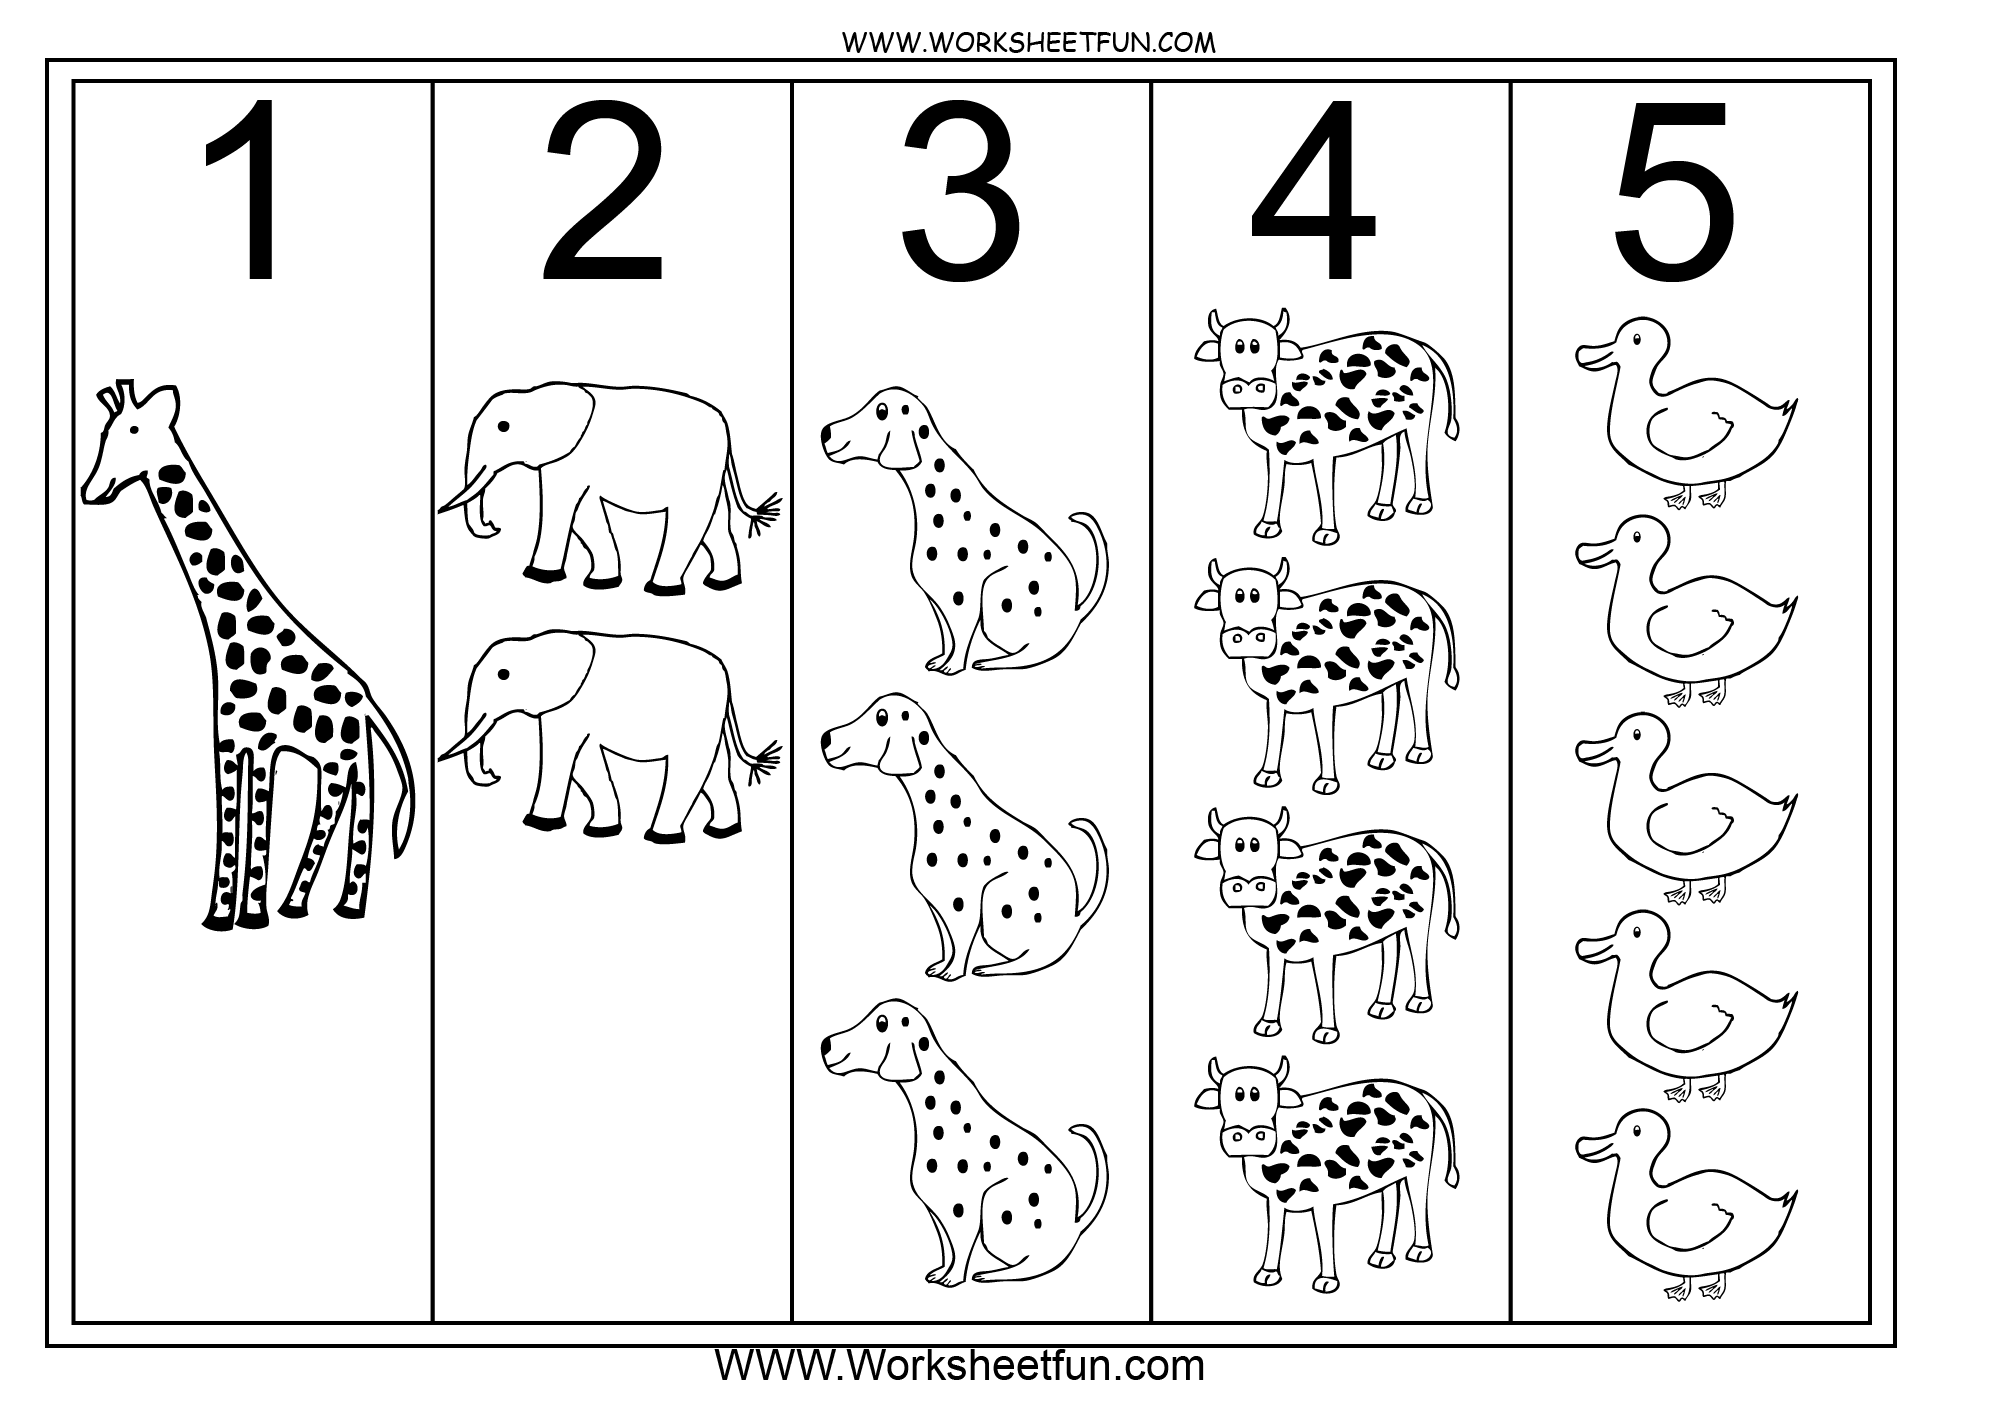 Worksheet Number 1-5 Worksheet kindergarten number worksheets 1 5 worksheet kids 8 best images of printable one